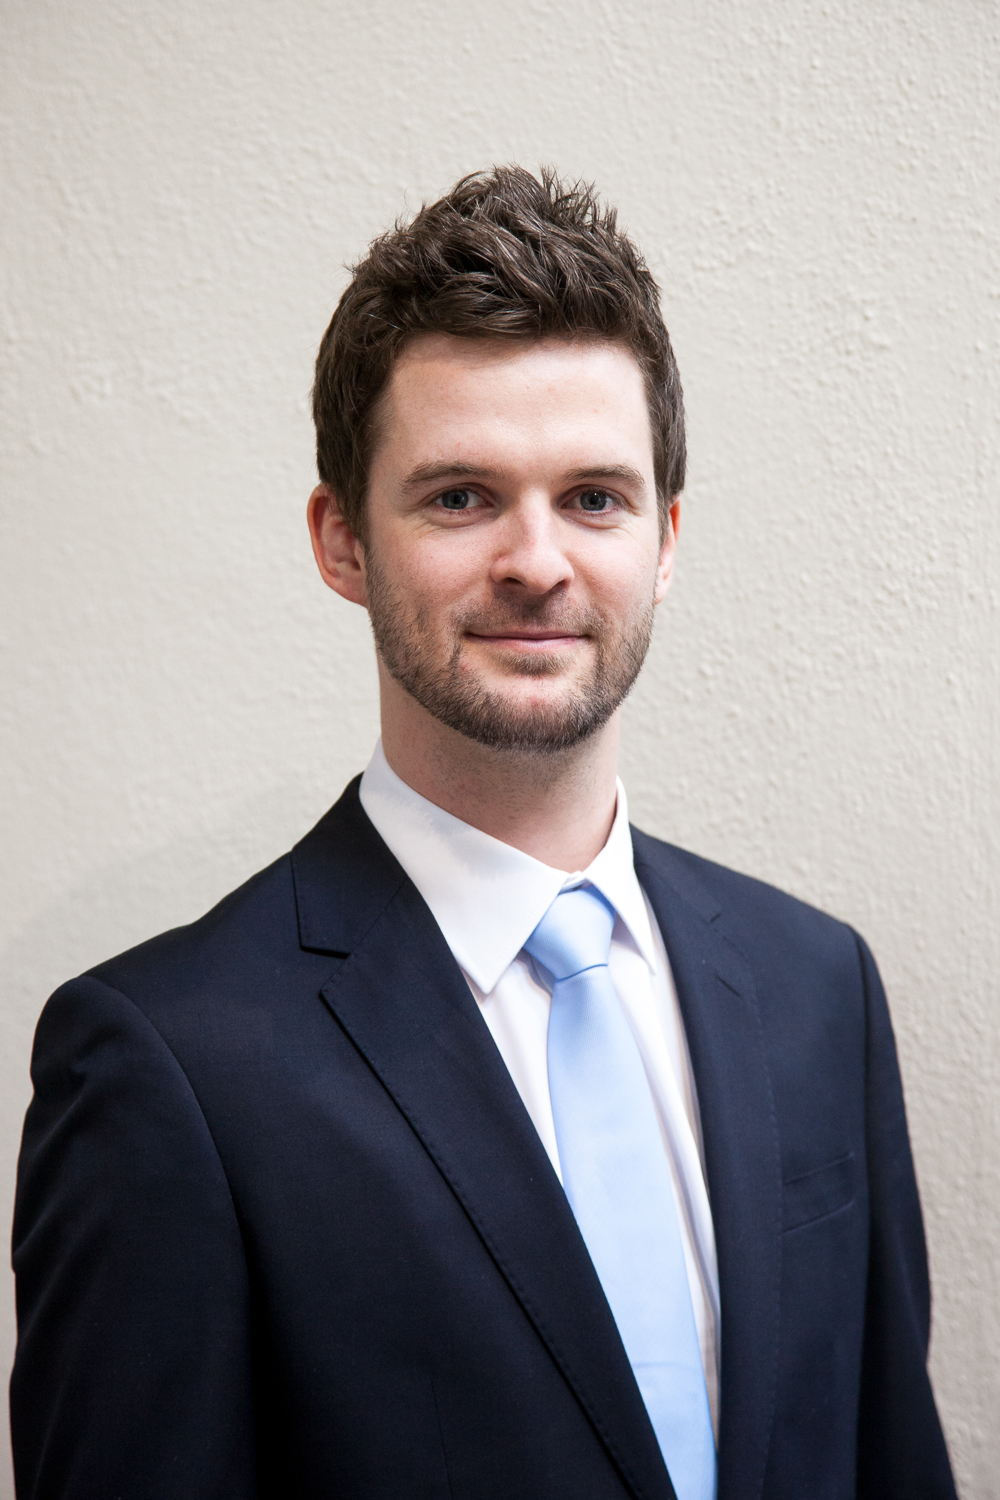 CIAN TWOMEY    ASSOCIATE DIRECTOR    CIAN.TWOMEY@CSCONSULTING.IE